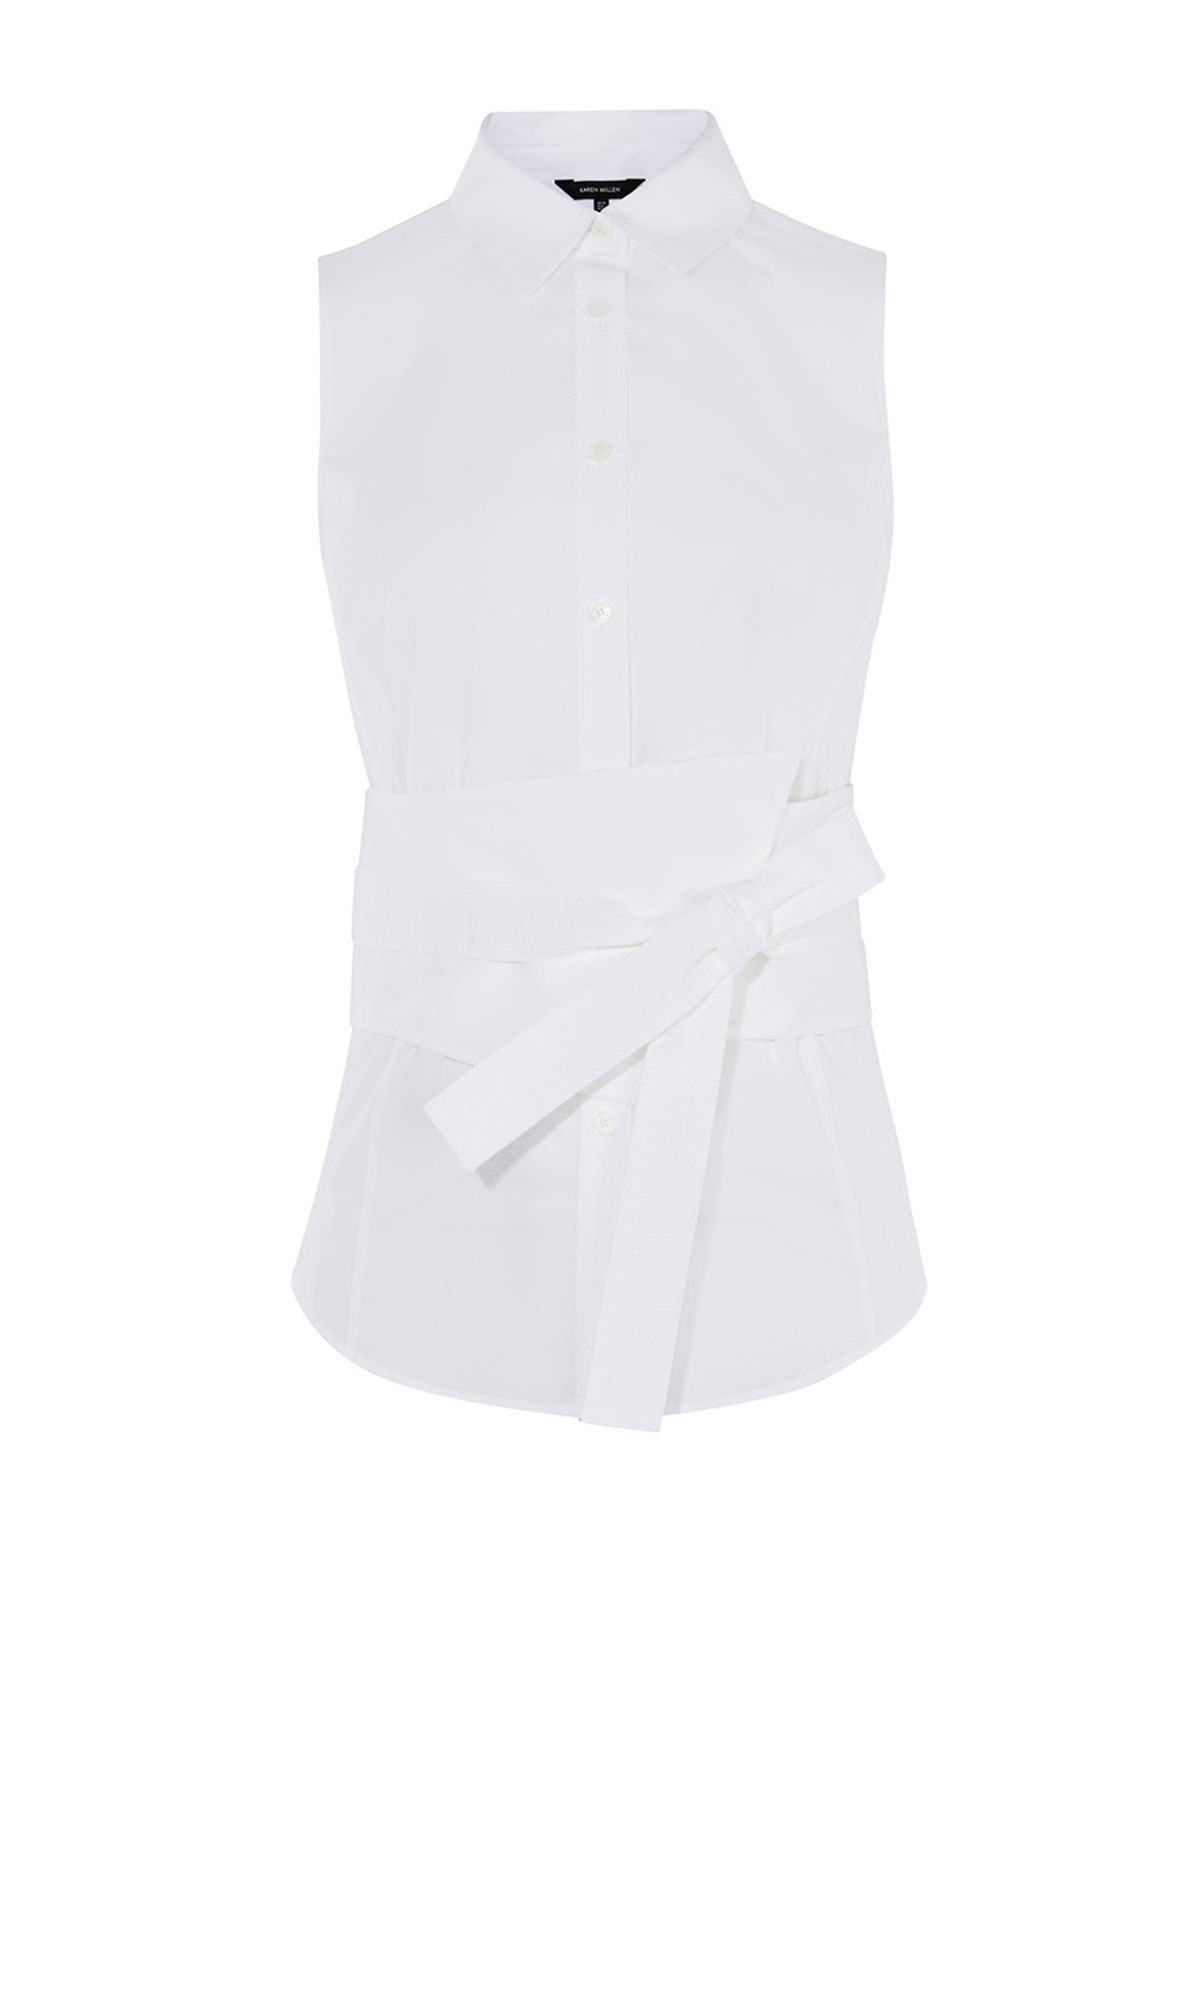 Karen Millen White Deconstruct Shirt, White